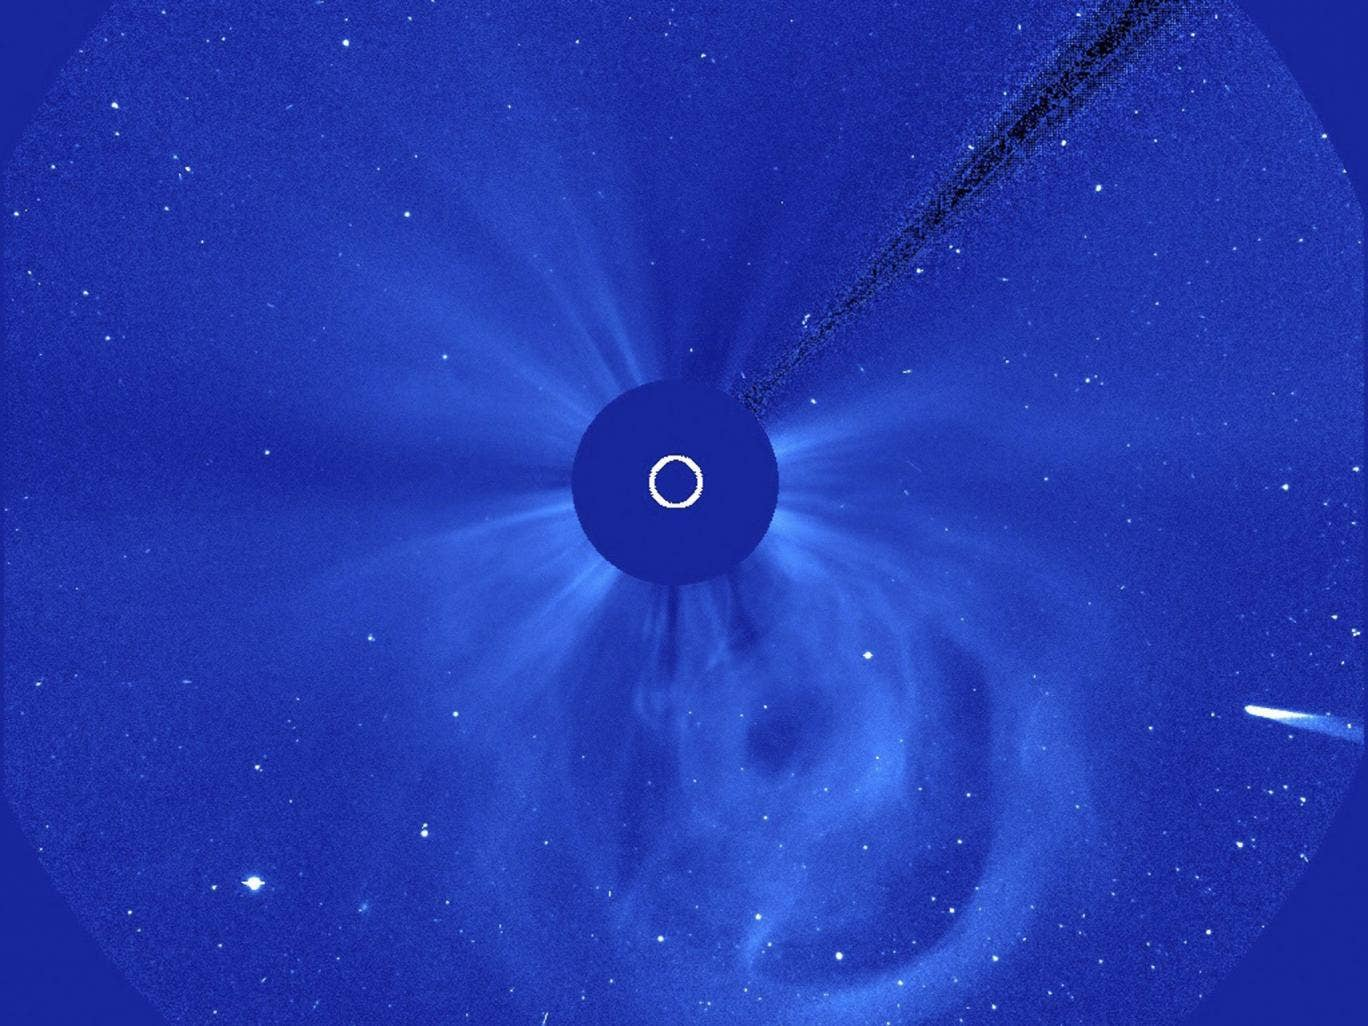 Comet ISON enters the field of view of the European Space Agency/NASA Solar and Heliospheric Observatory